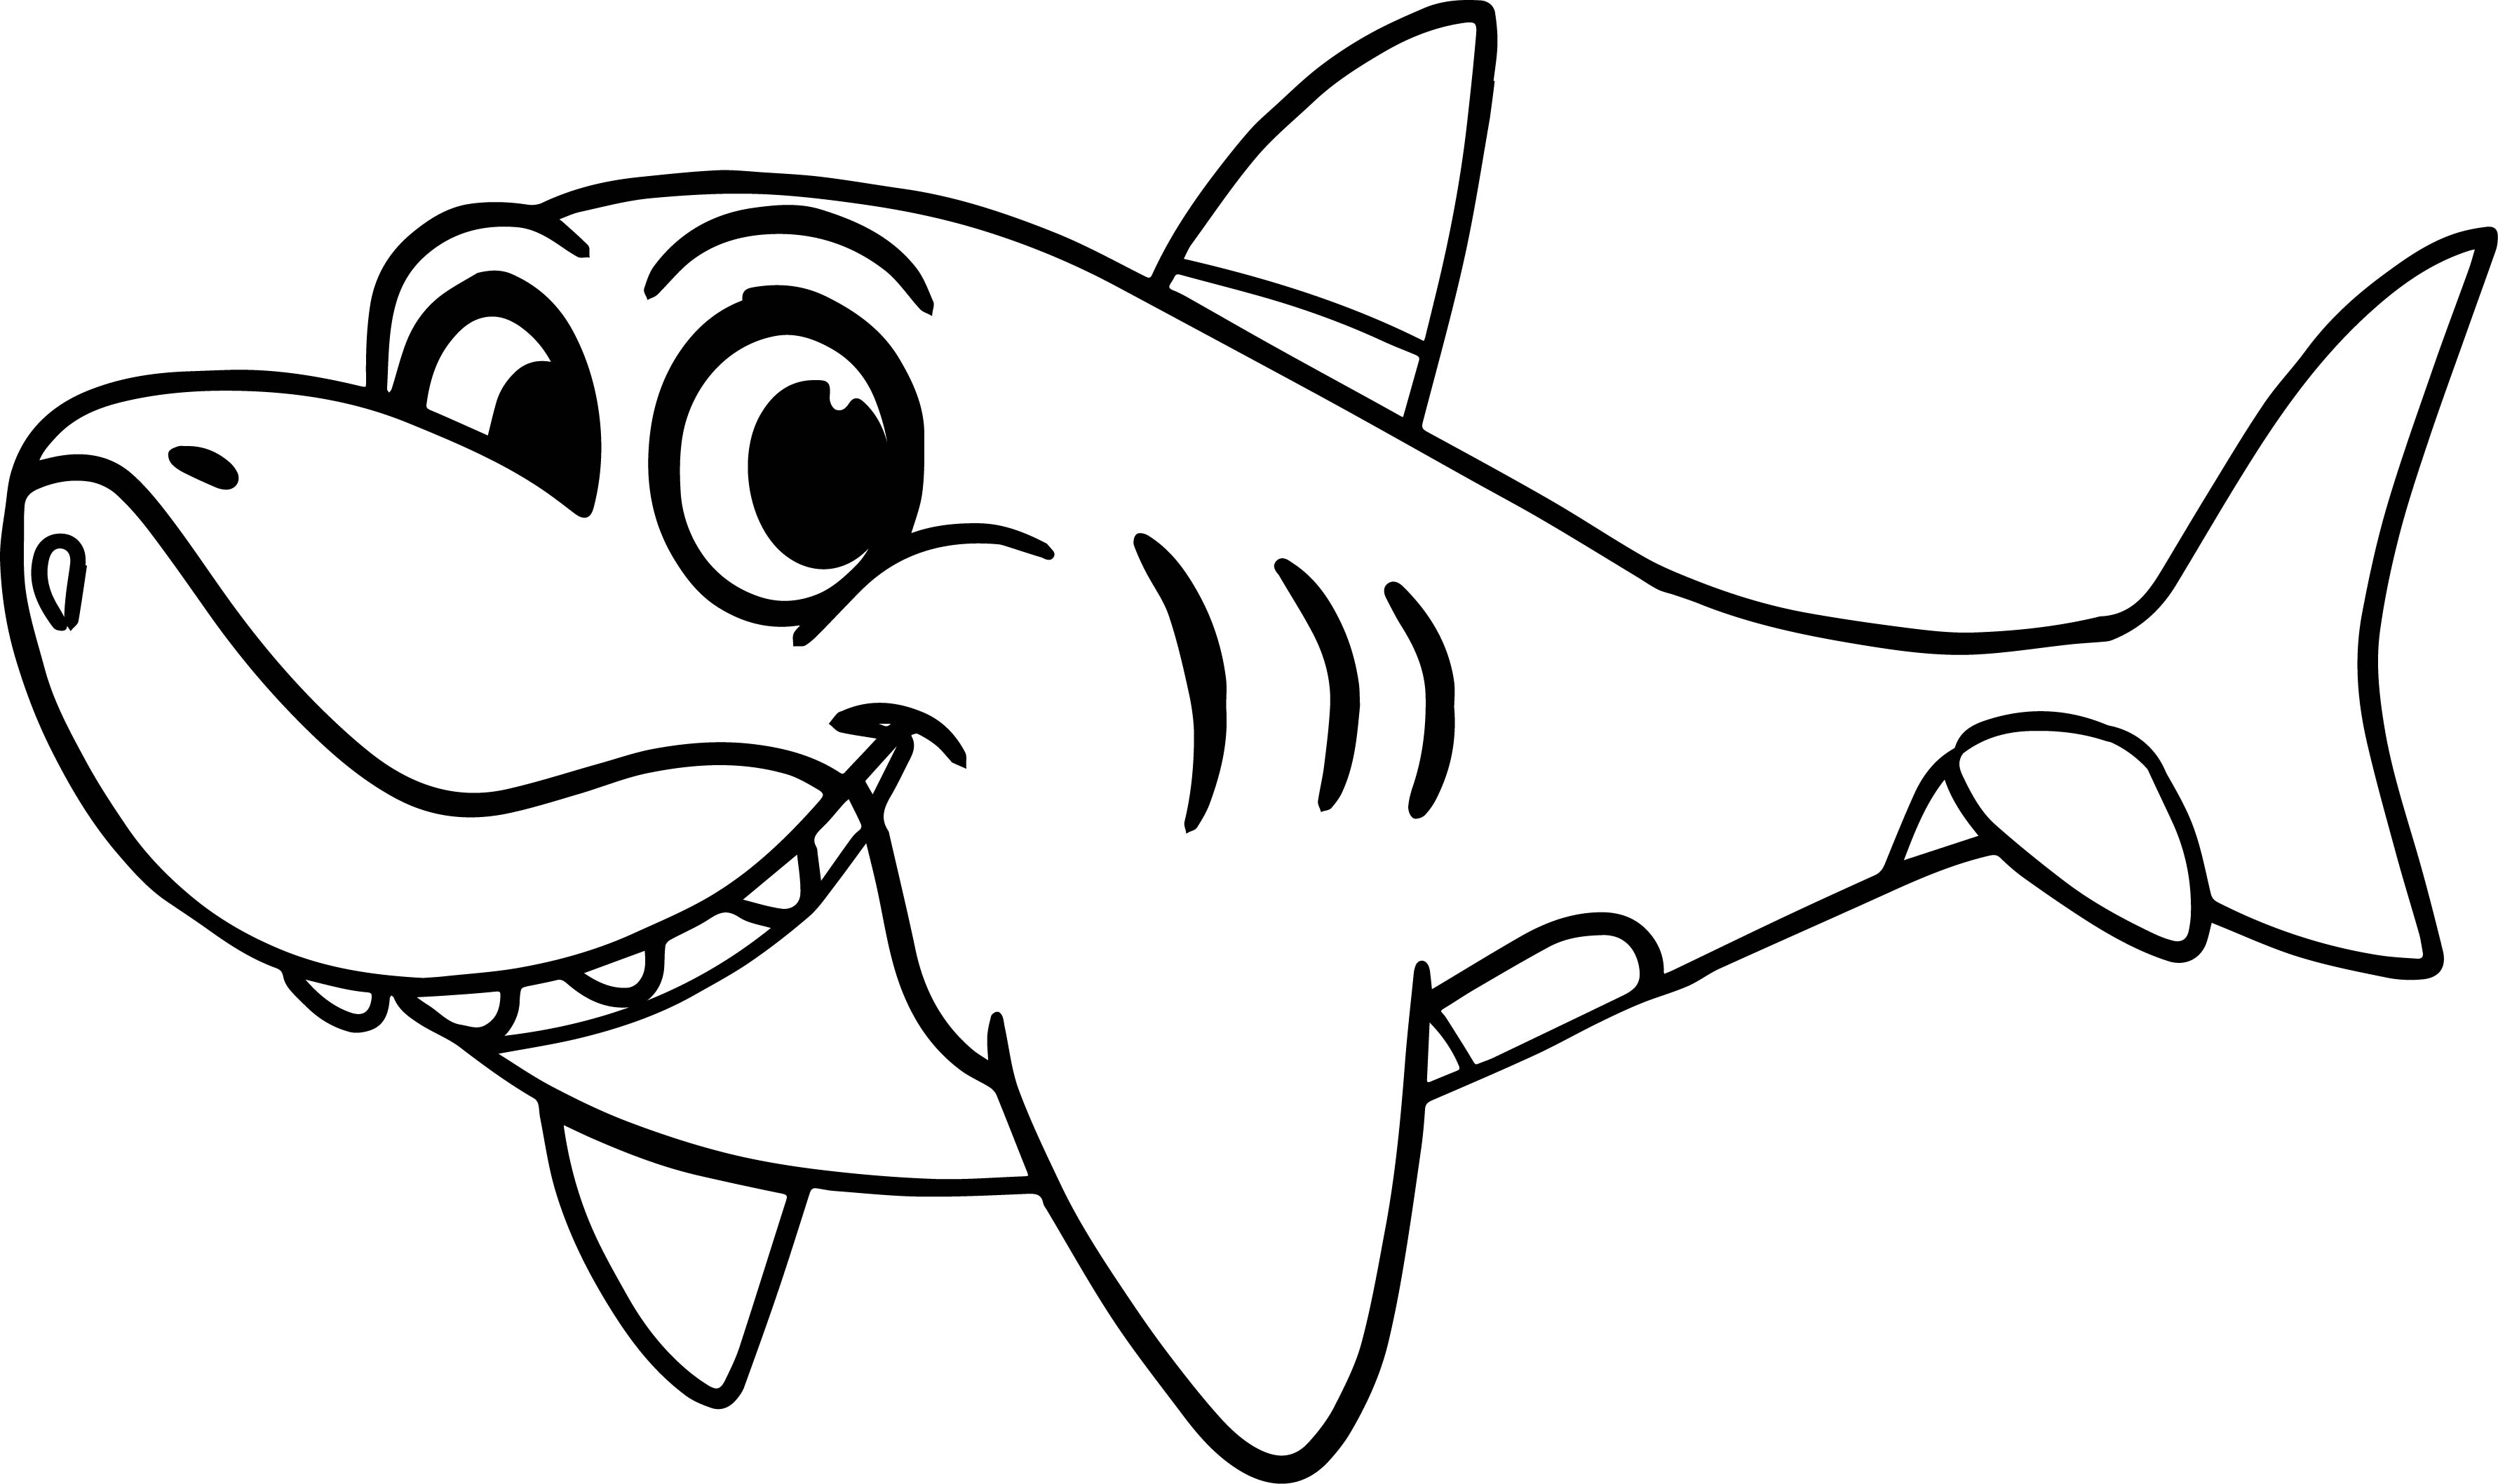 3562x2116 Coloring Pages Decorative Shark Images To Color Sharkboy